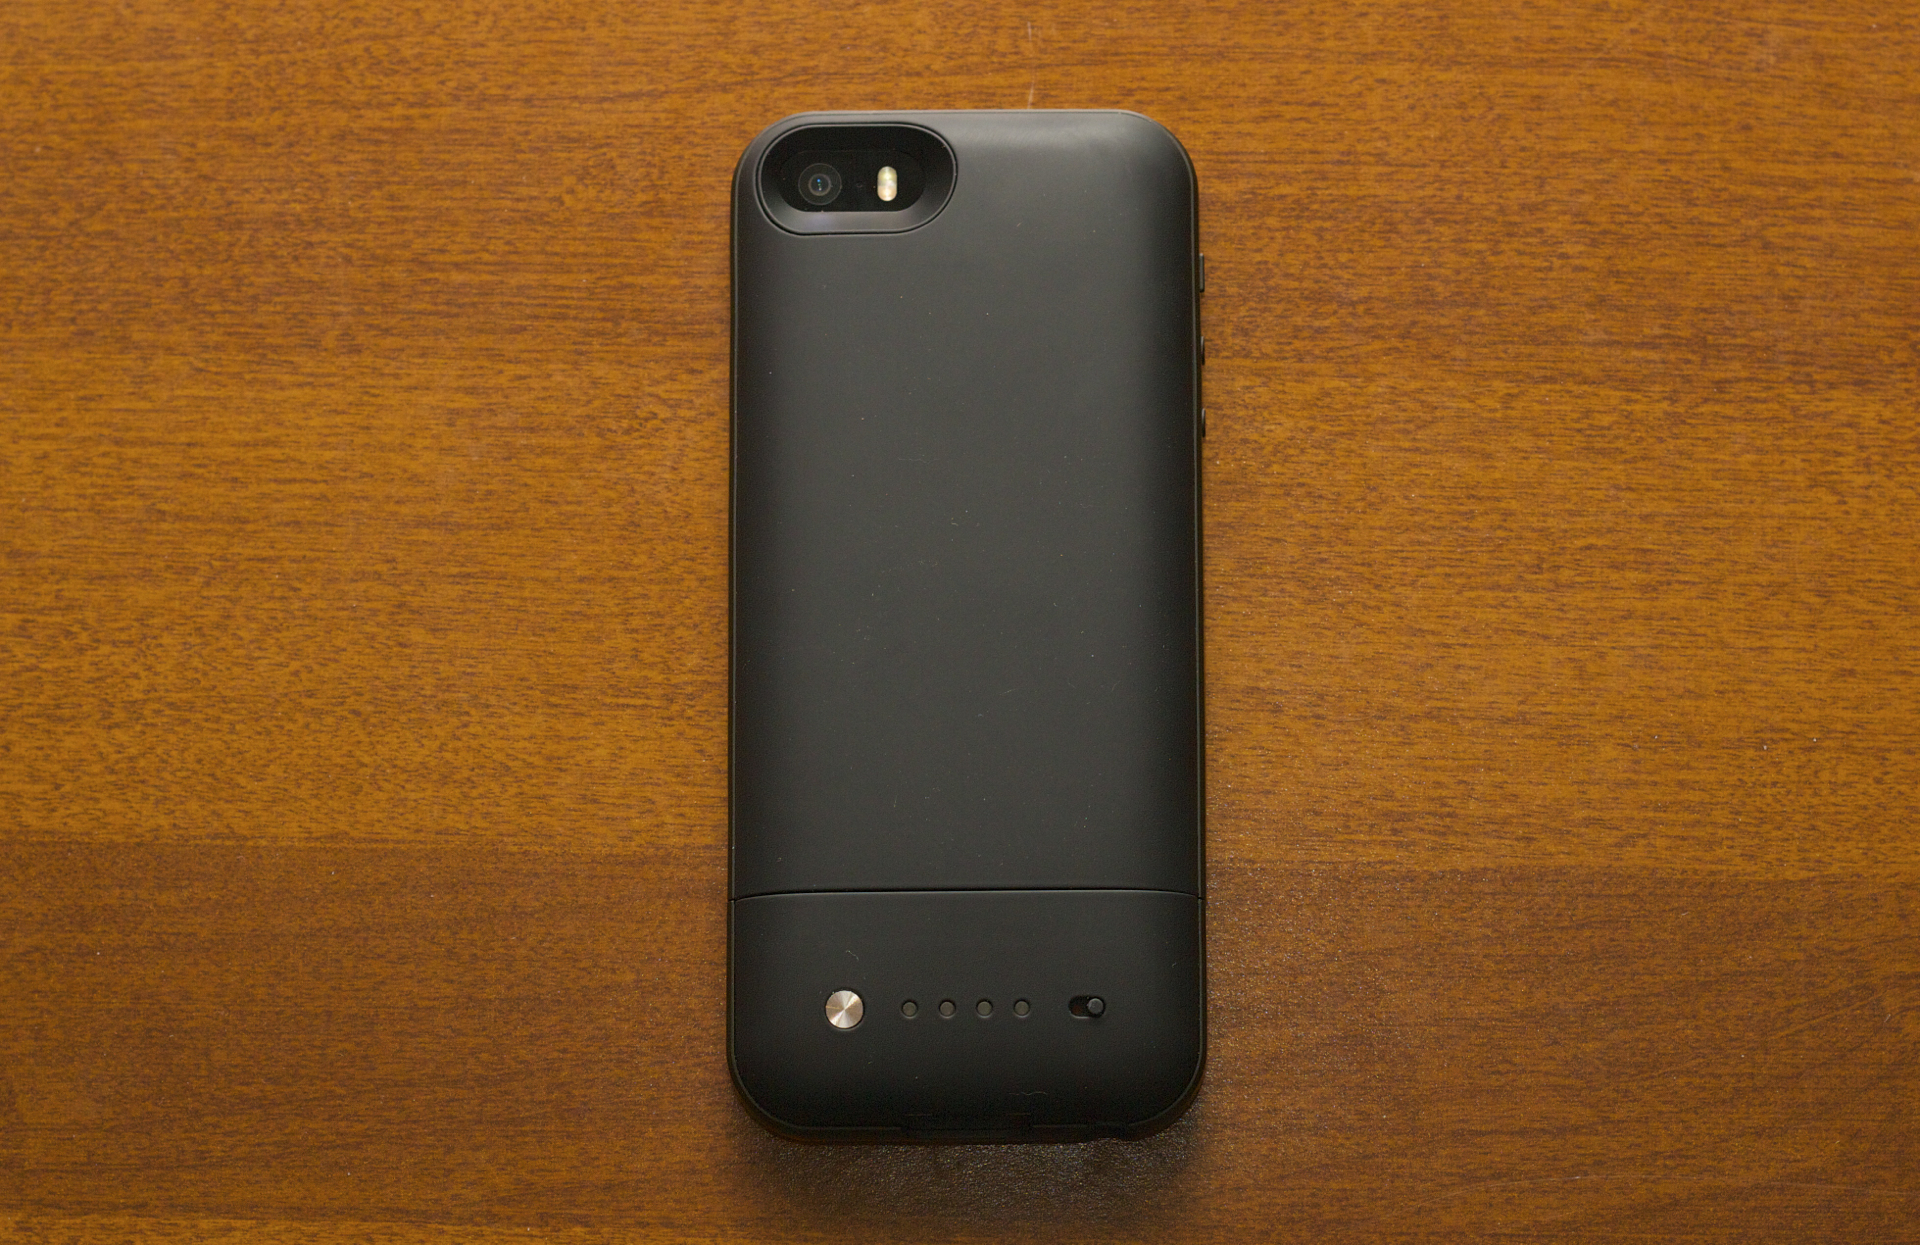 The top part of the case is all battery. At the bottom is a button you can press to check your charge and a switch to turn charging on and off.